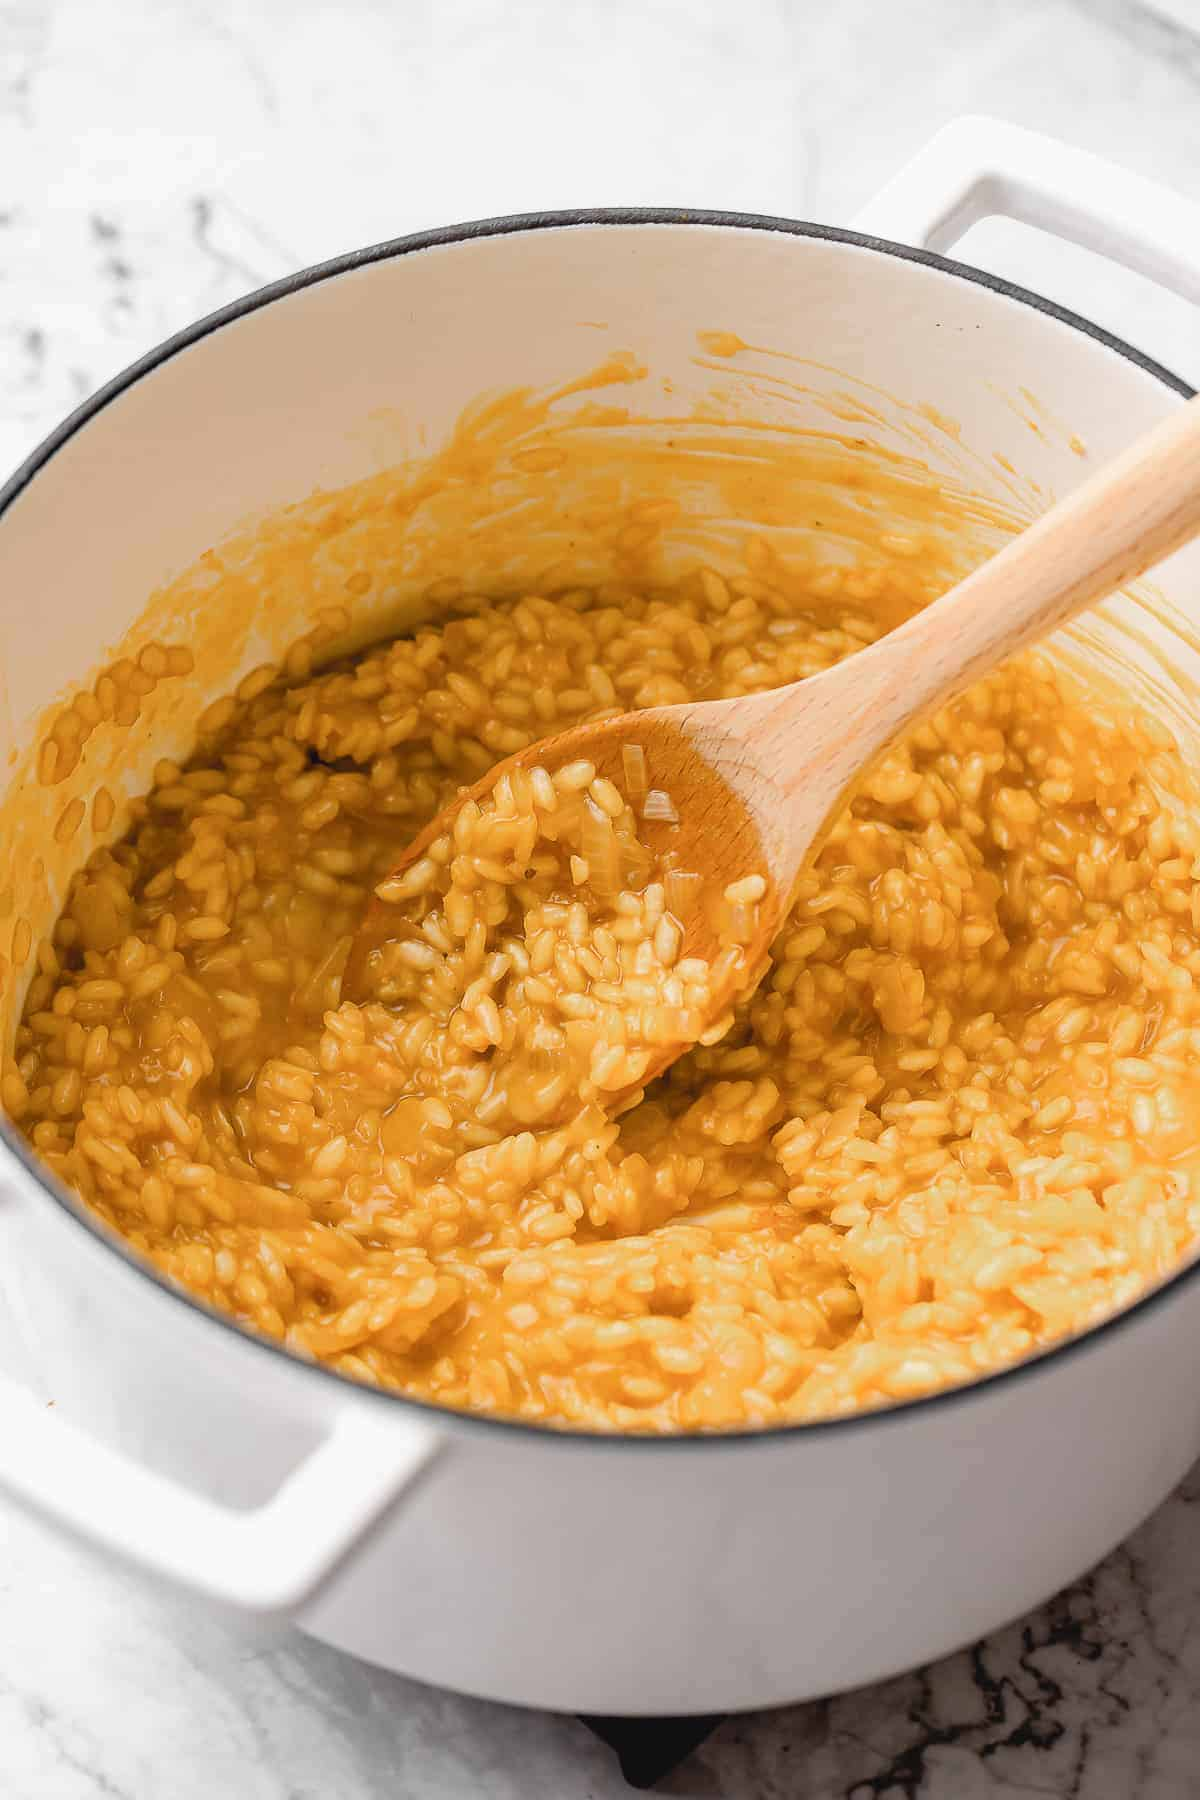 Creamy risotto in a pan.